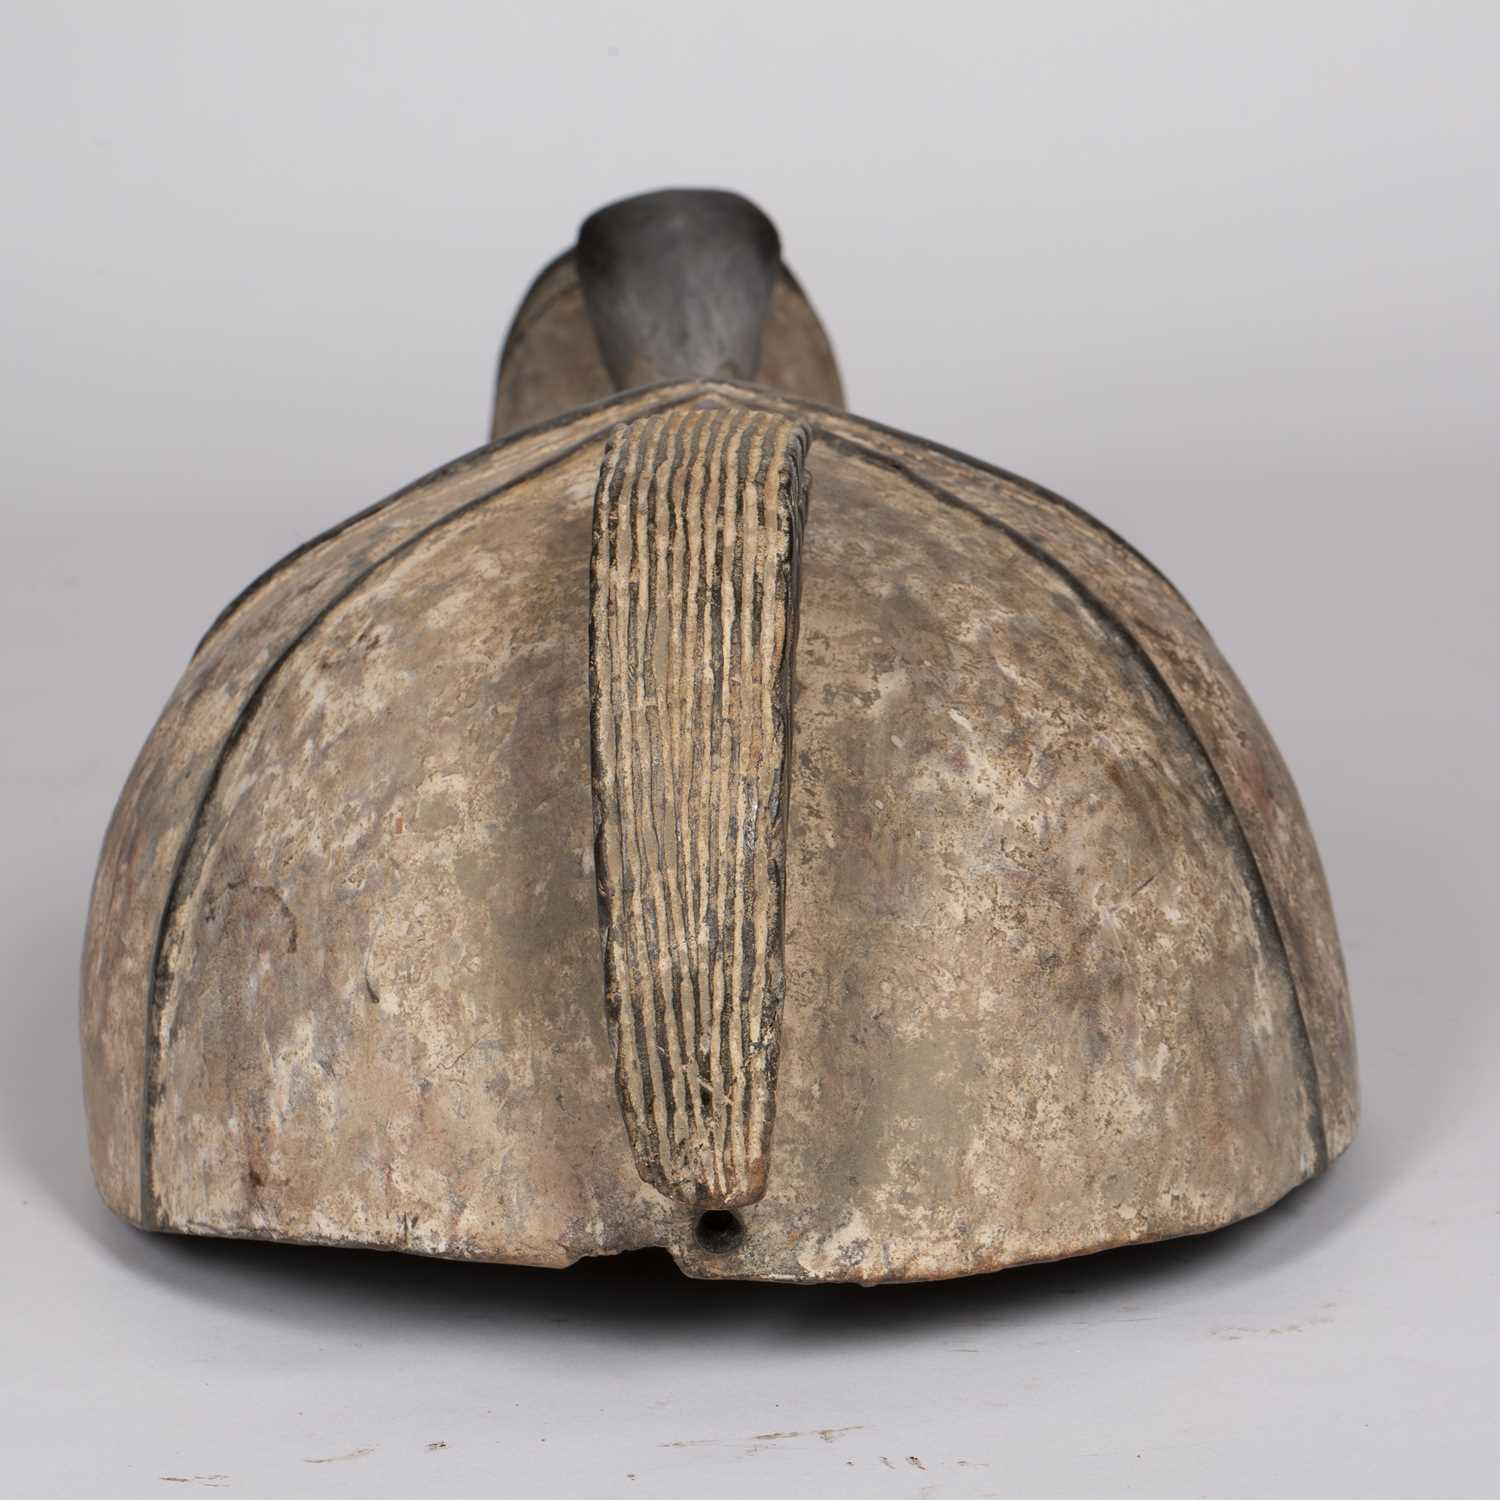 A Fang mask, Gabon, carved wood with incised line marks with black and white pigments, 74cm high - Image 3 of 5